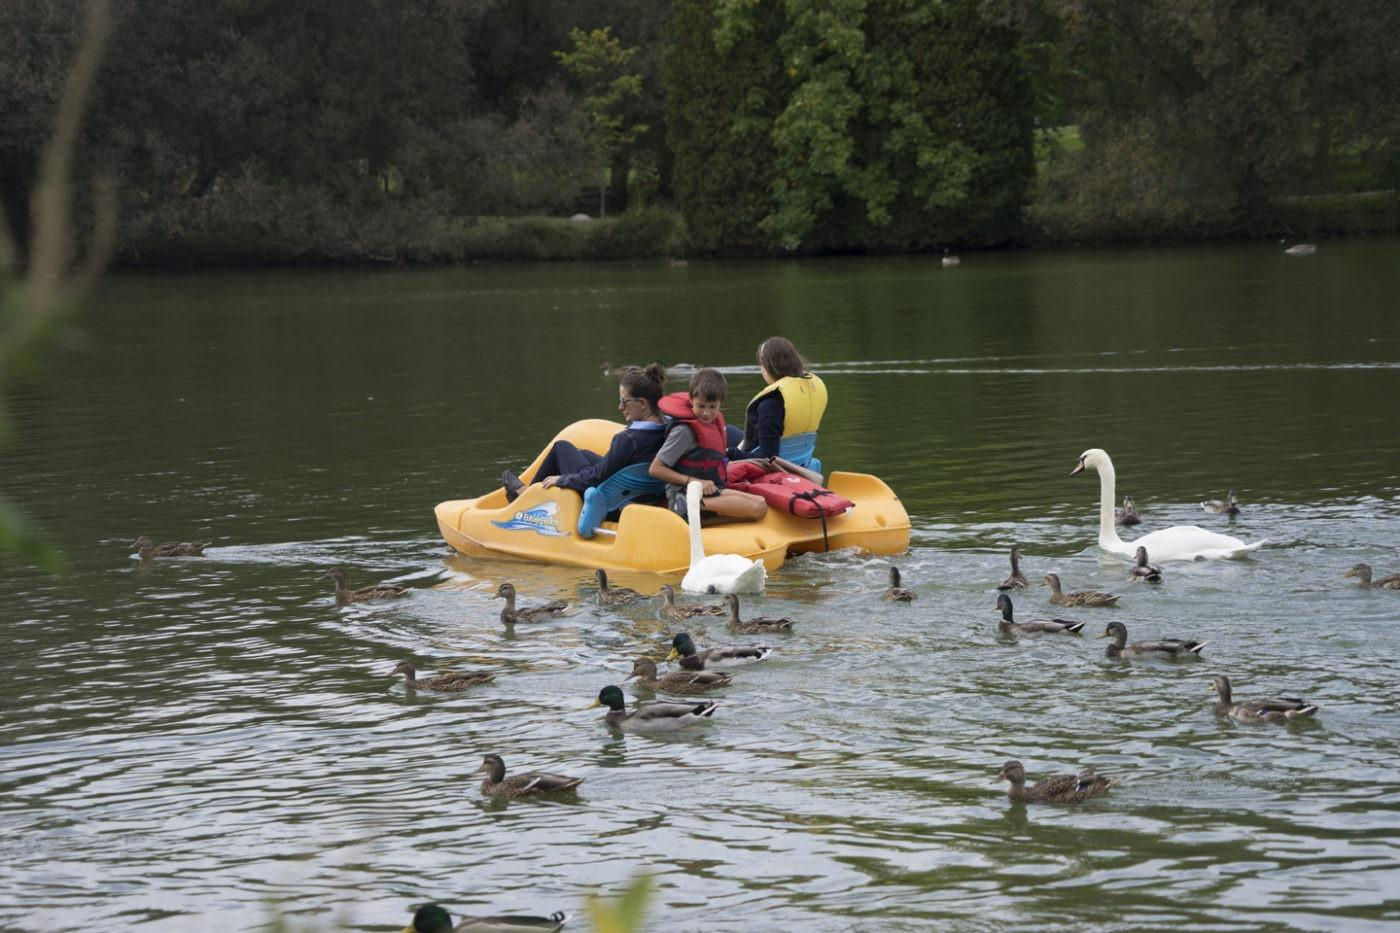 Lots of fun paddle boating on the Avon in Stratford WEB 1